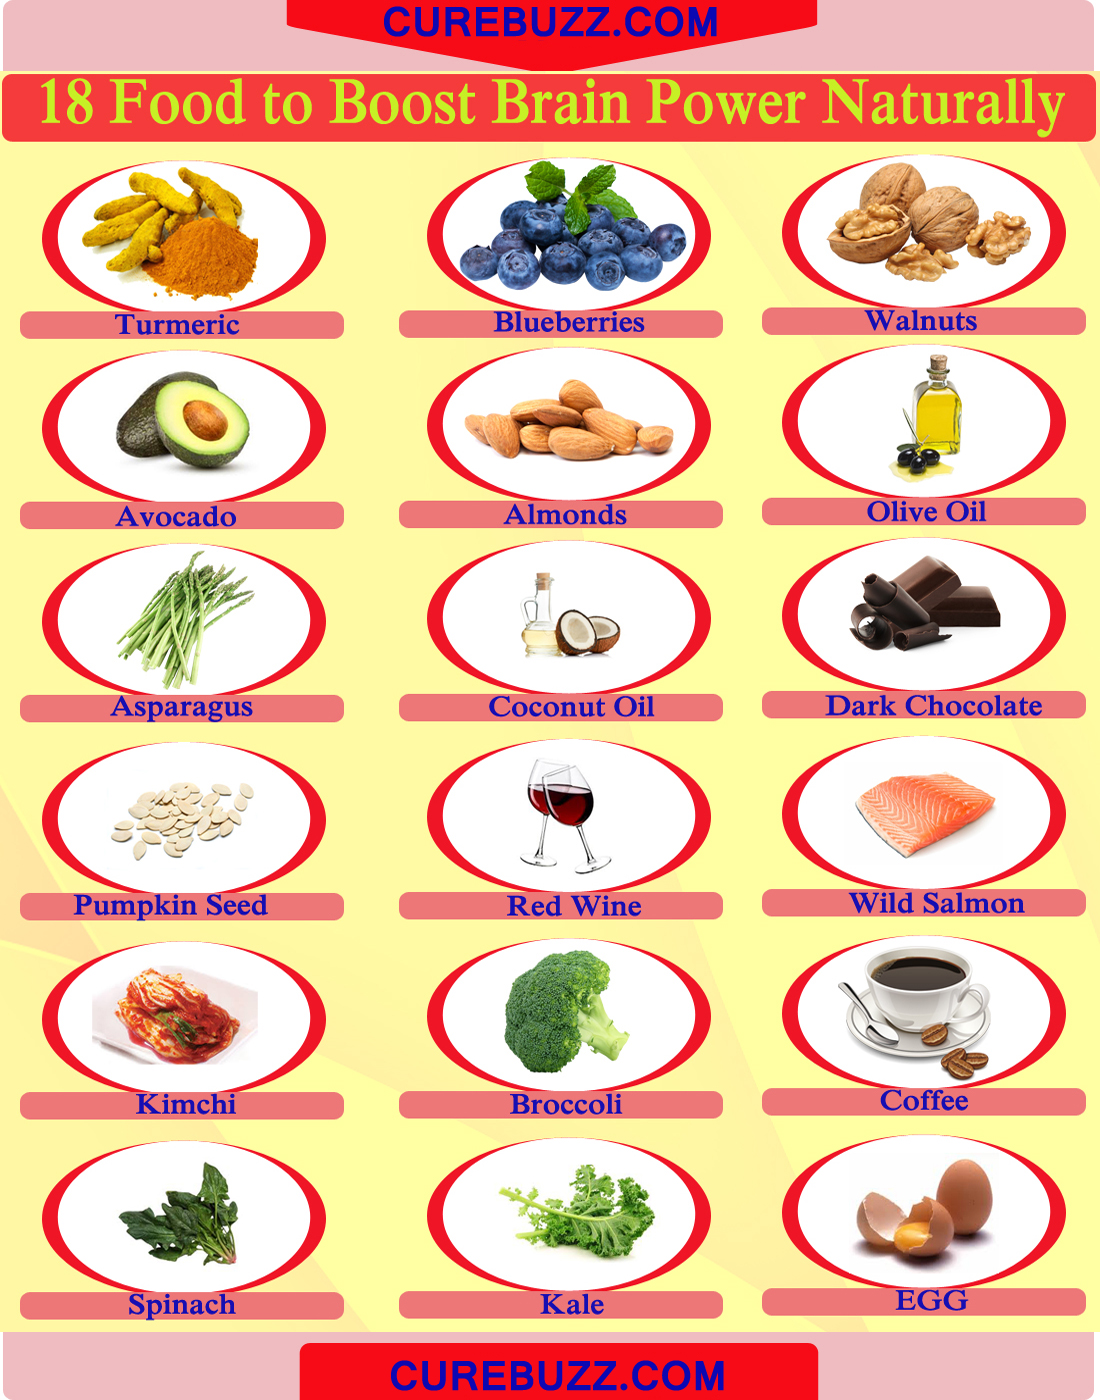 18 Foods To Boost Brain Power Naturally